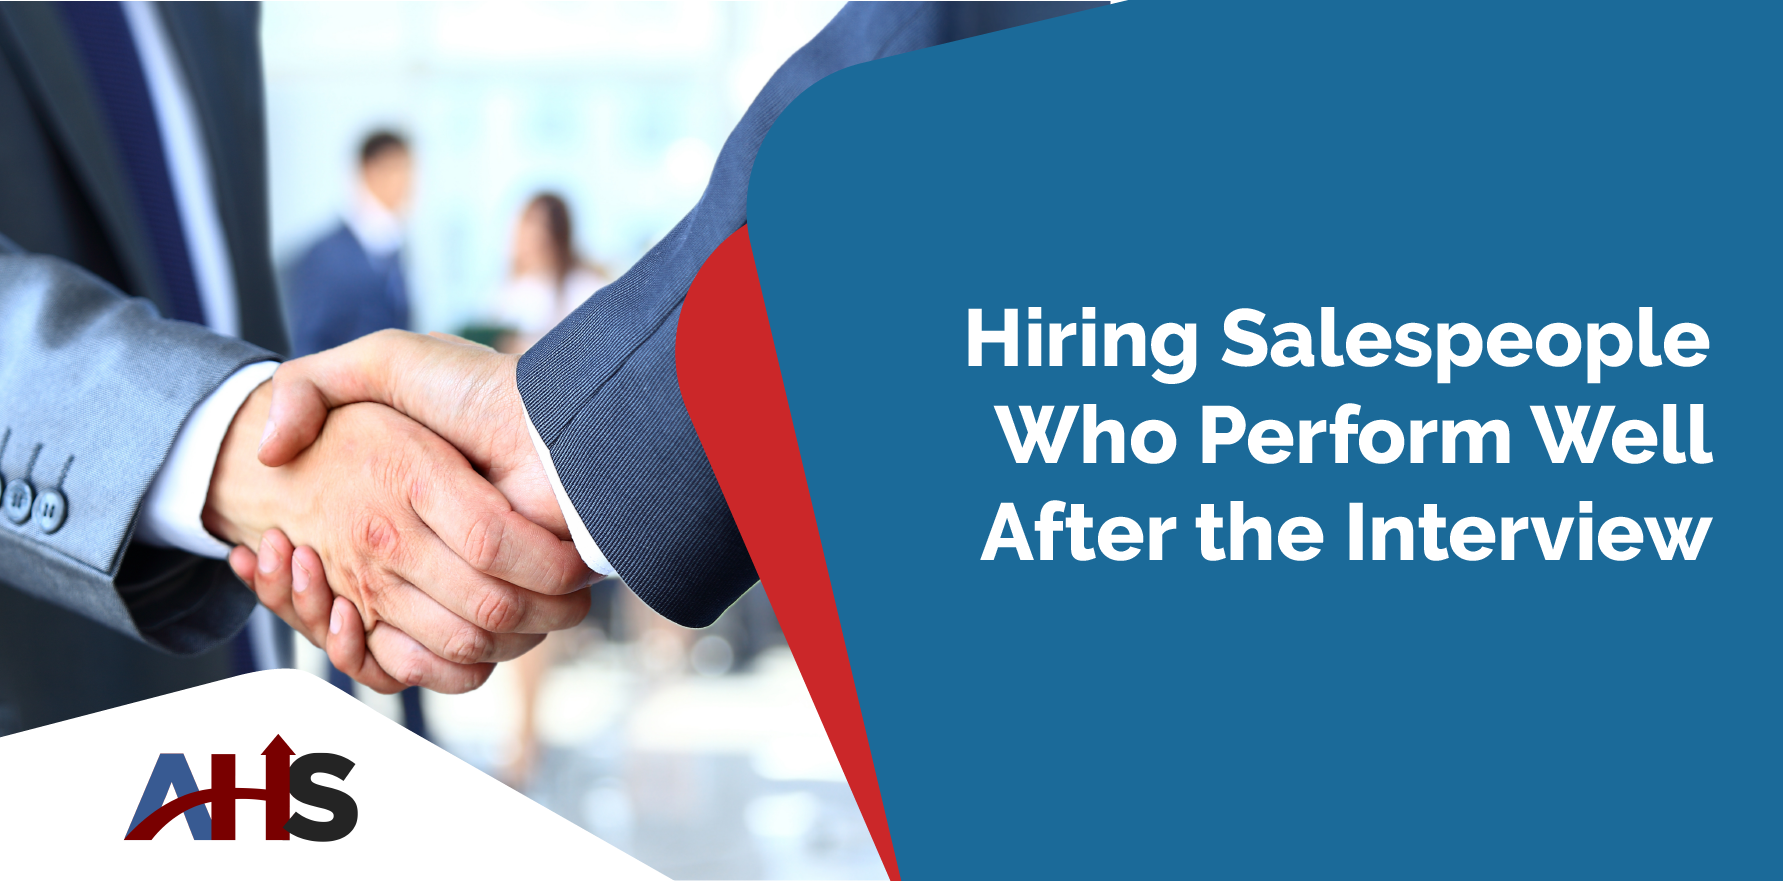 Hiring Salespeople Who Perform Well After the Interview